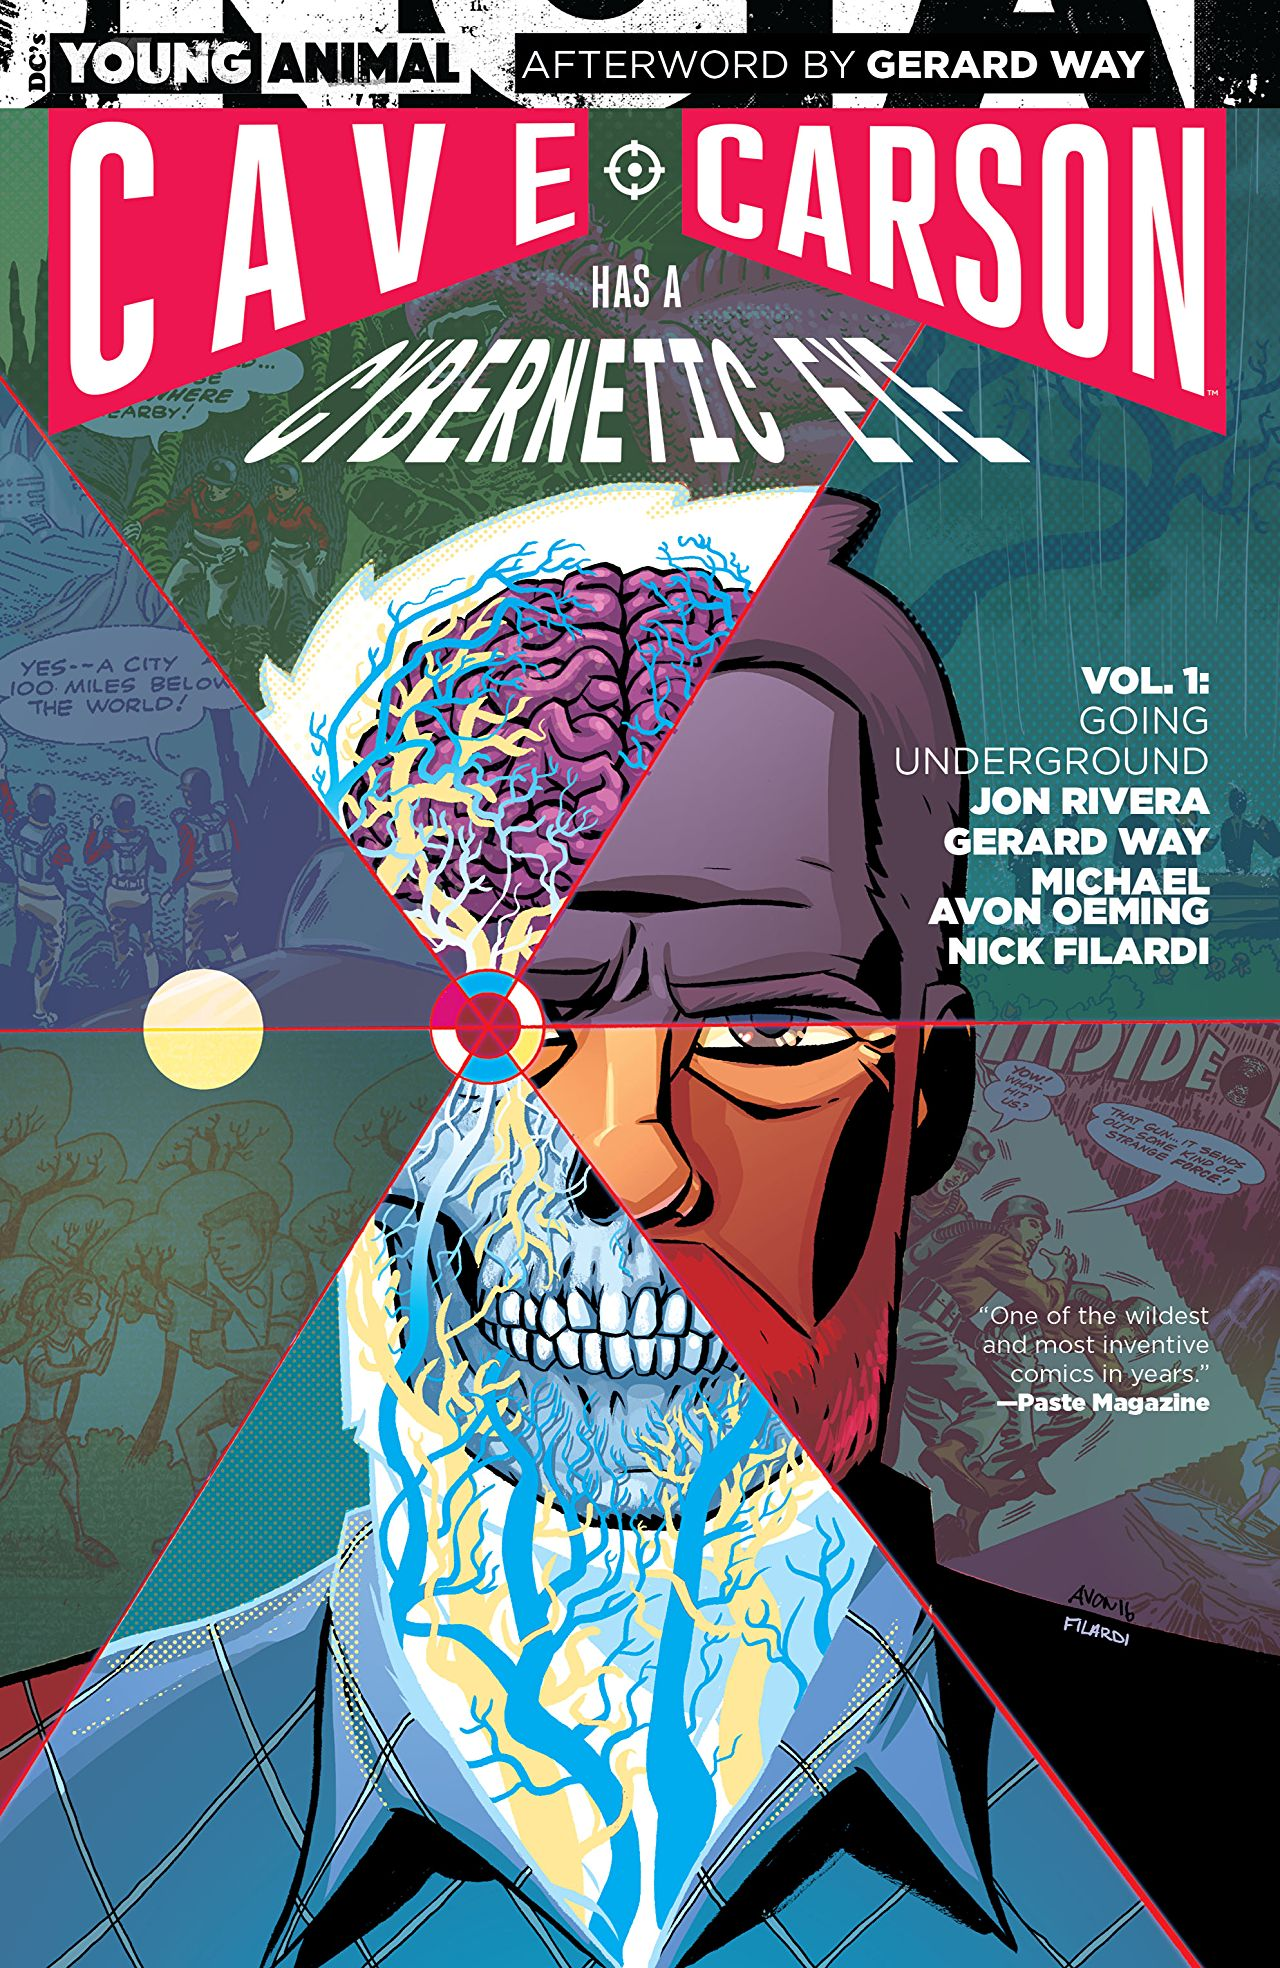 'Cave Carson Has a Cybernetic Eye Vol 1: Going Underground' is a psychedelic, adult subversion of the genre